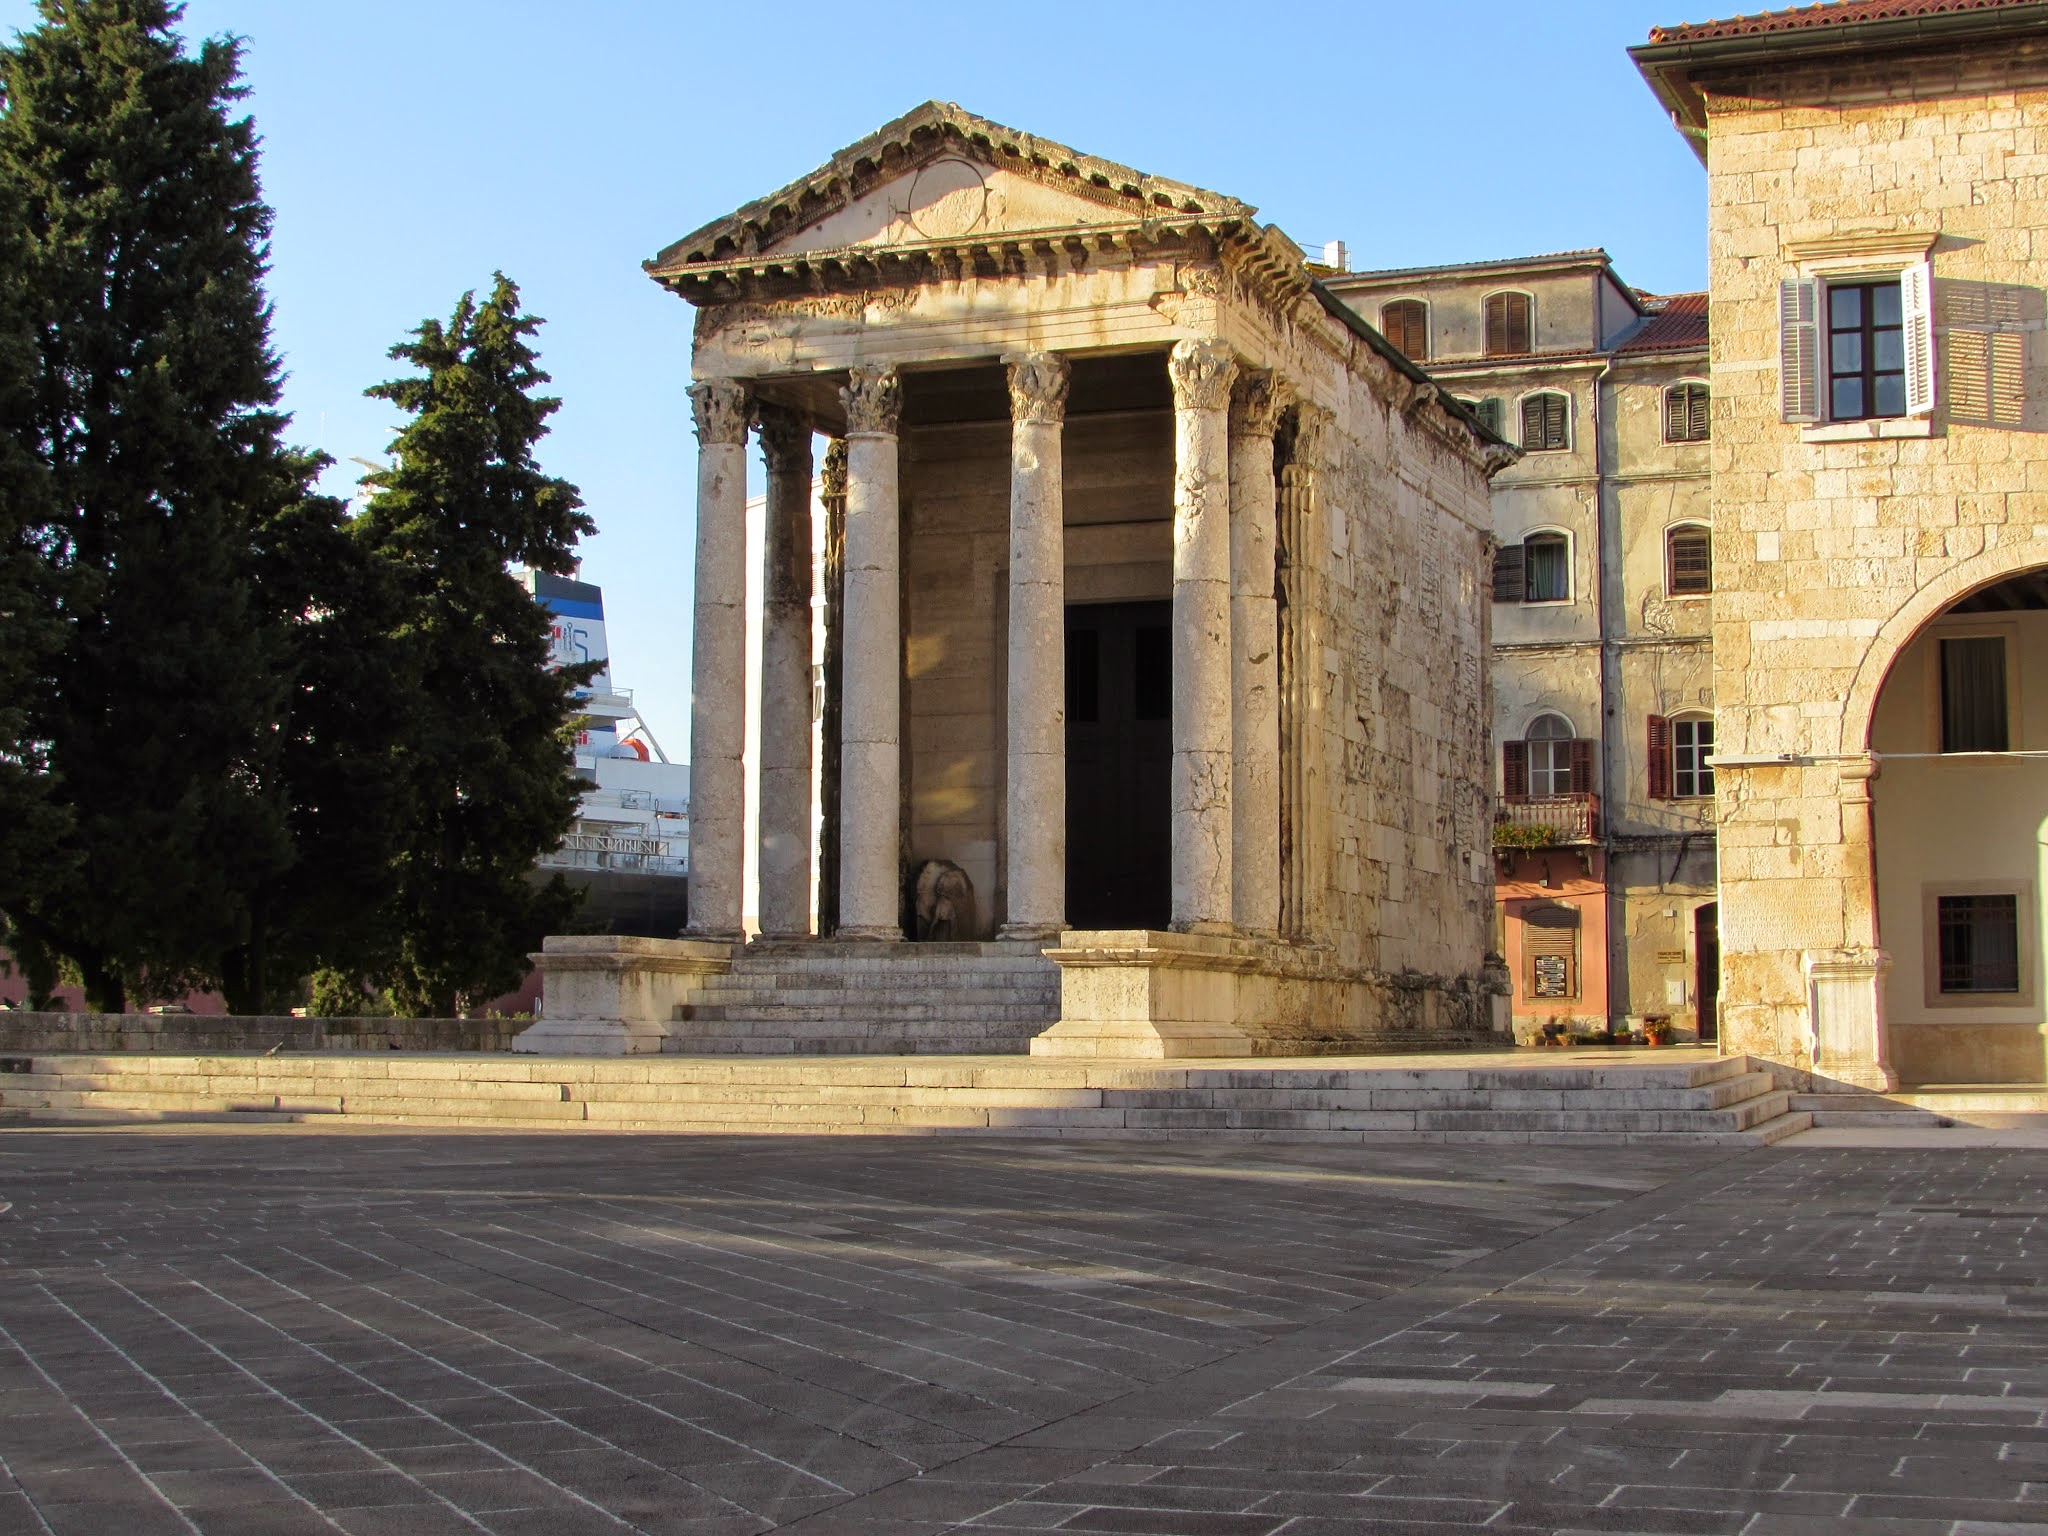 The Temple of Augustus in the old Roman forum of Pula.